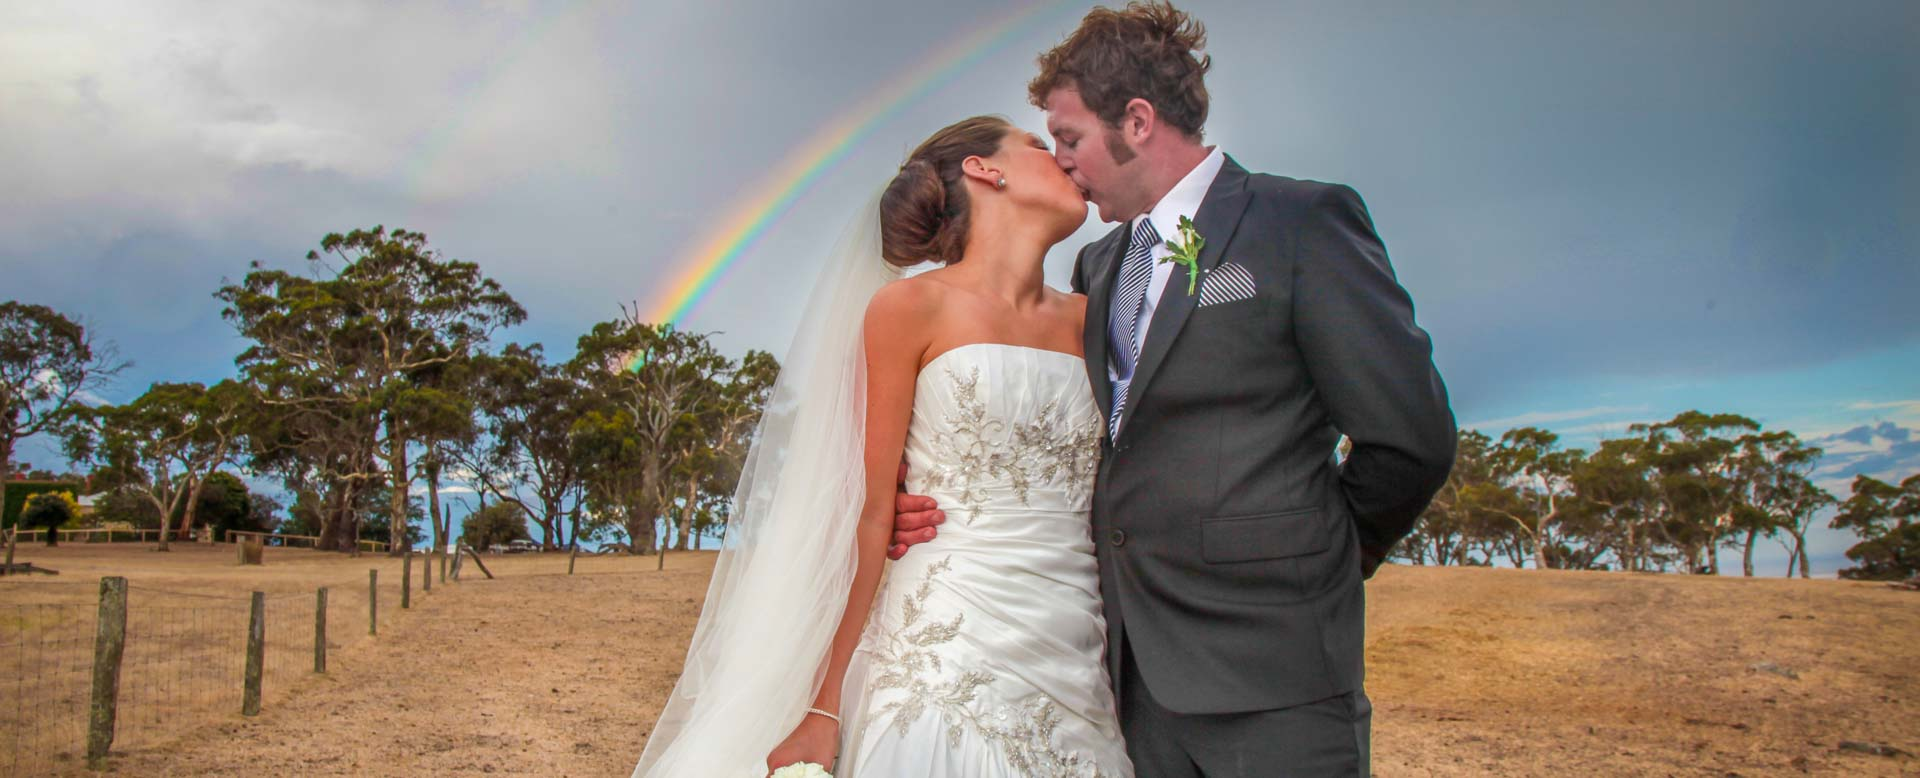 Wedding Photography Adelaide. Fleurieu wedding photography.